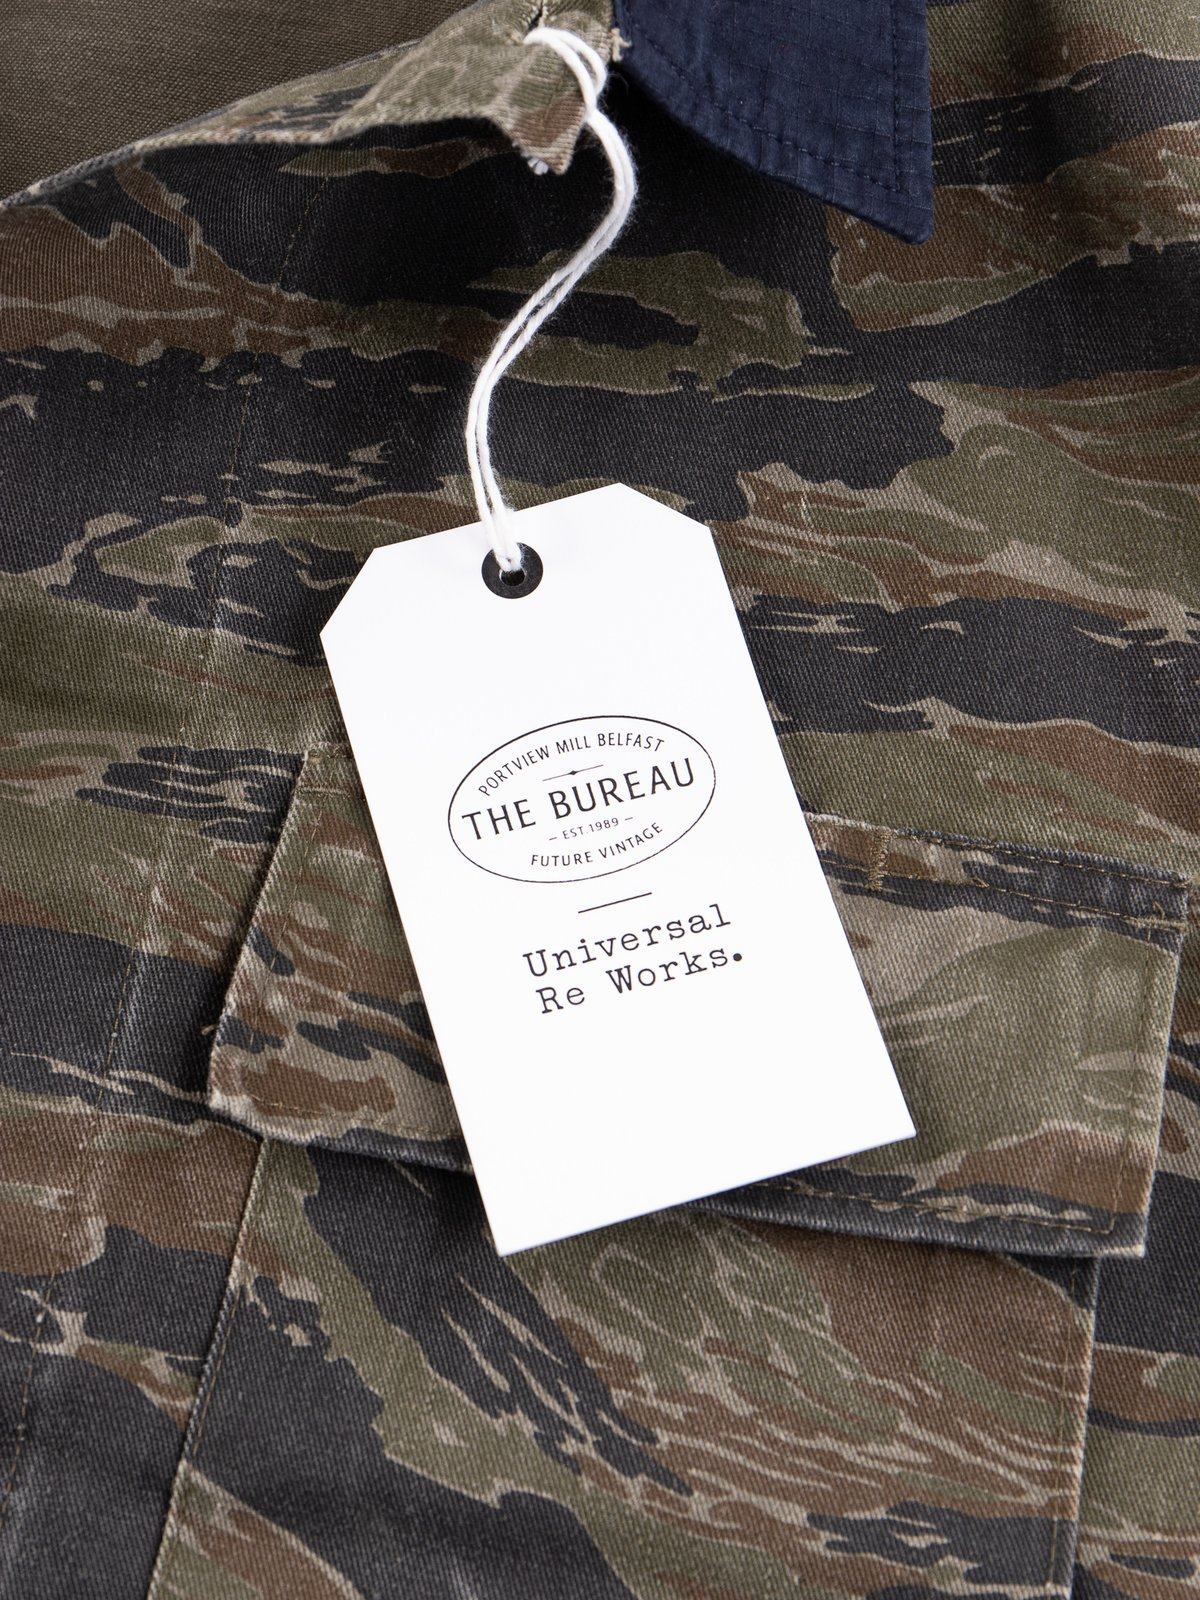 Reworks Camo/Navy Field Jacket - Image 9